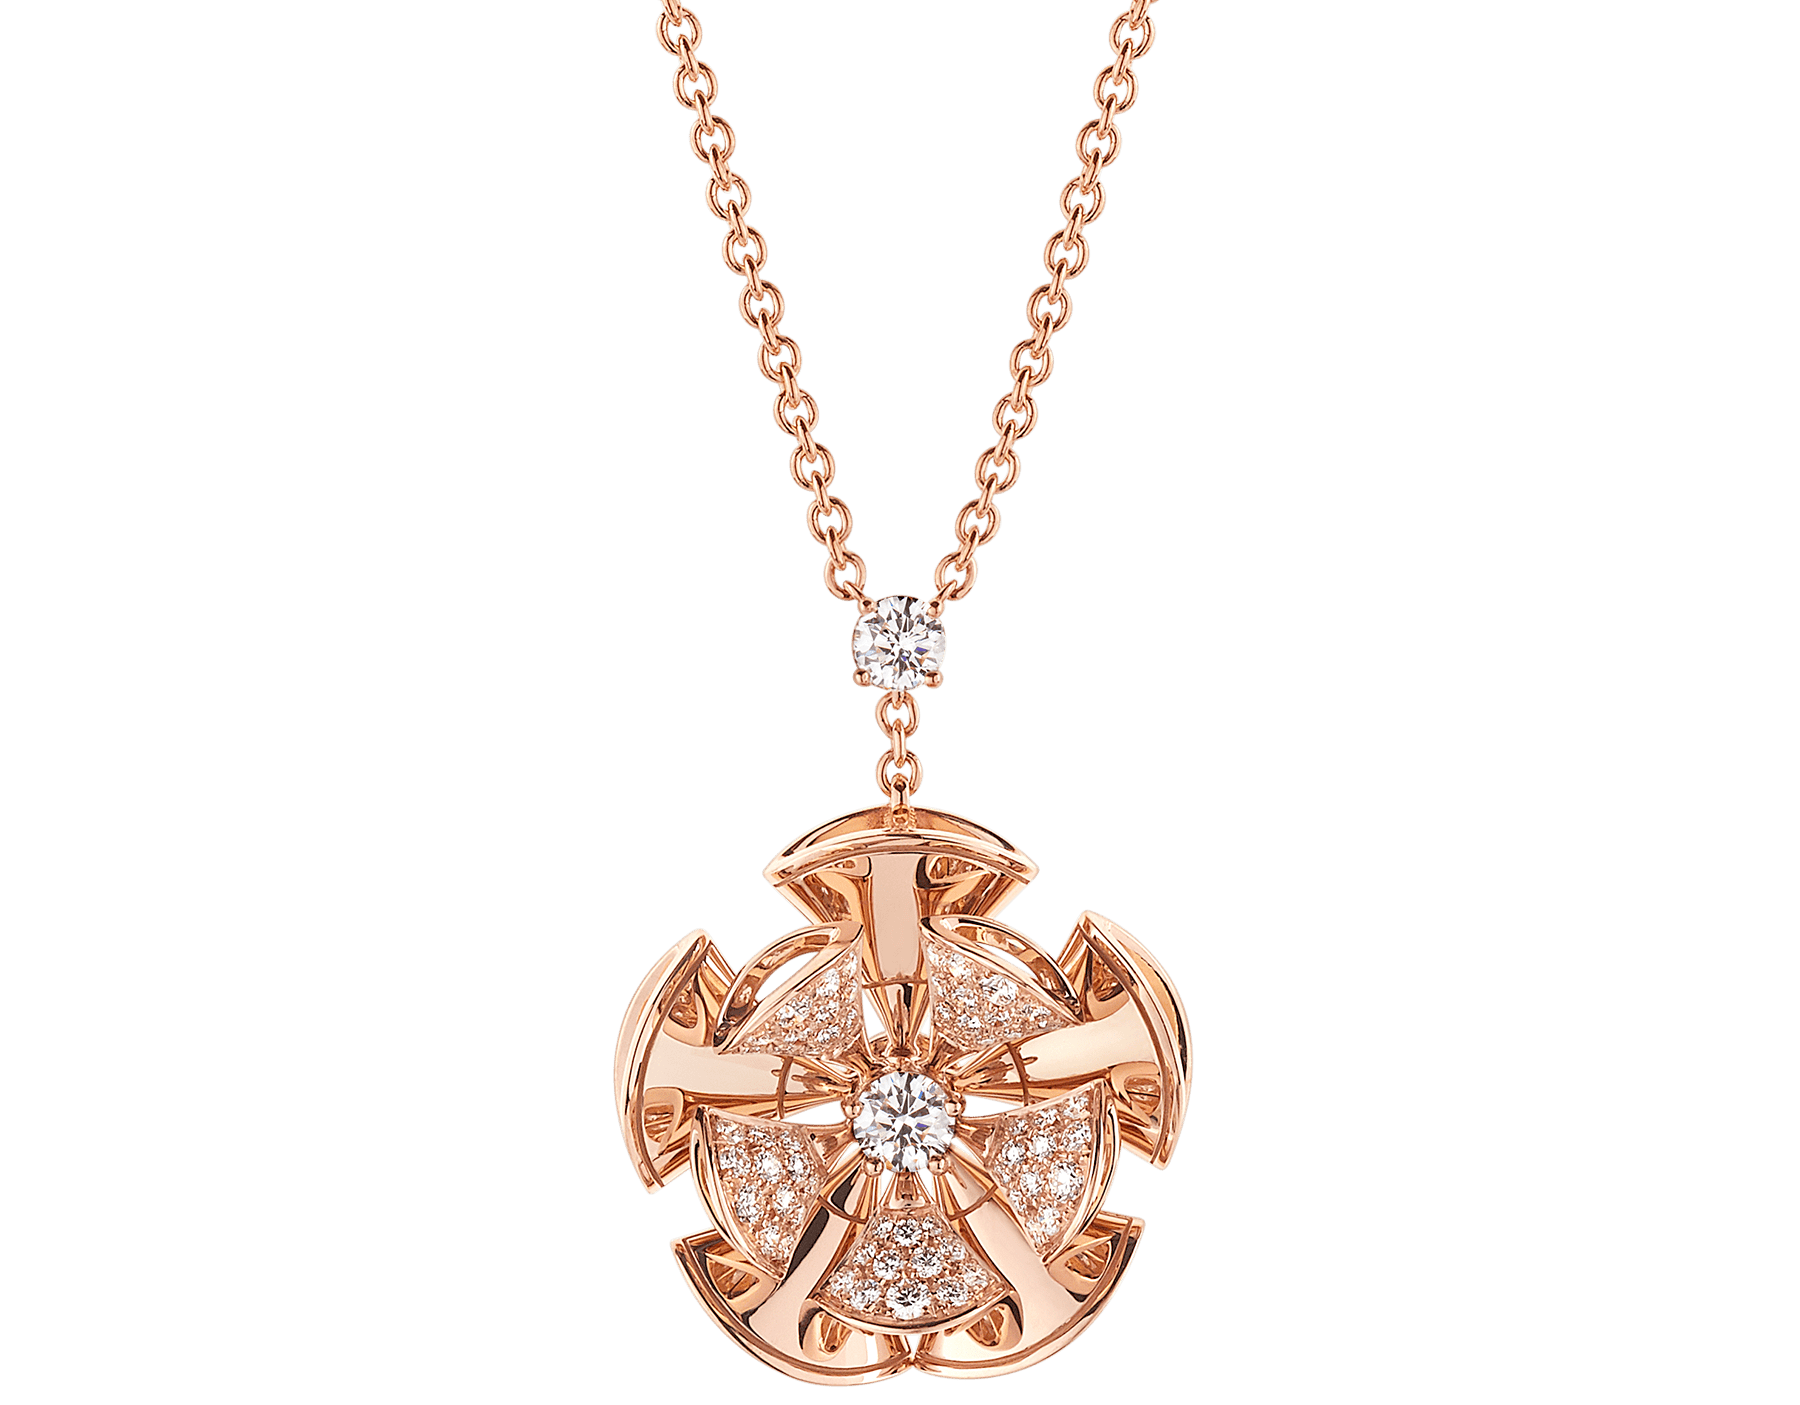 DIVAS' DREAM necklace in 18 kt rose gold with a diamond on the chain and 18 kt rose gold pendant set with central diamond and pavé diamonds. 350783 image 1